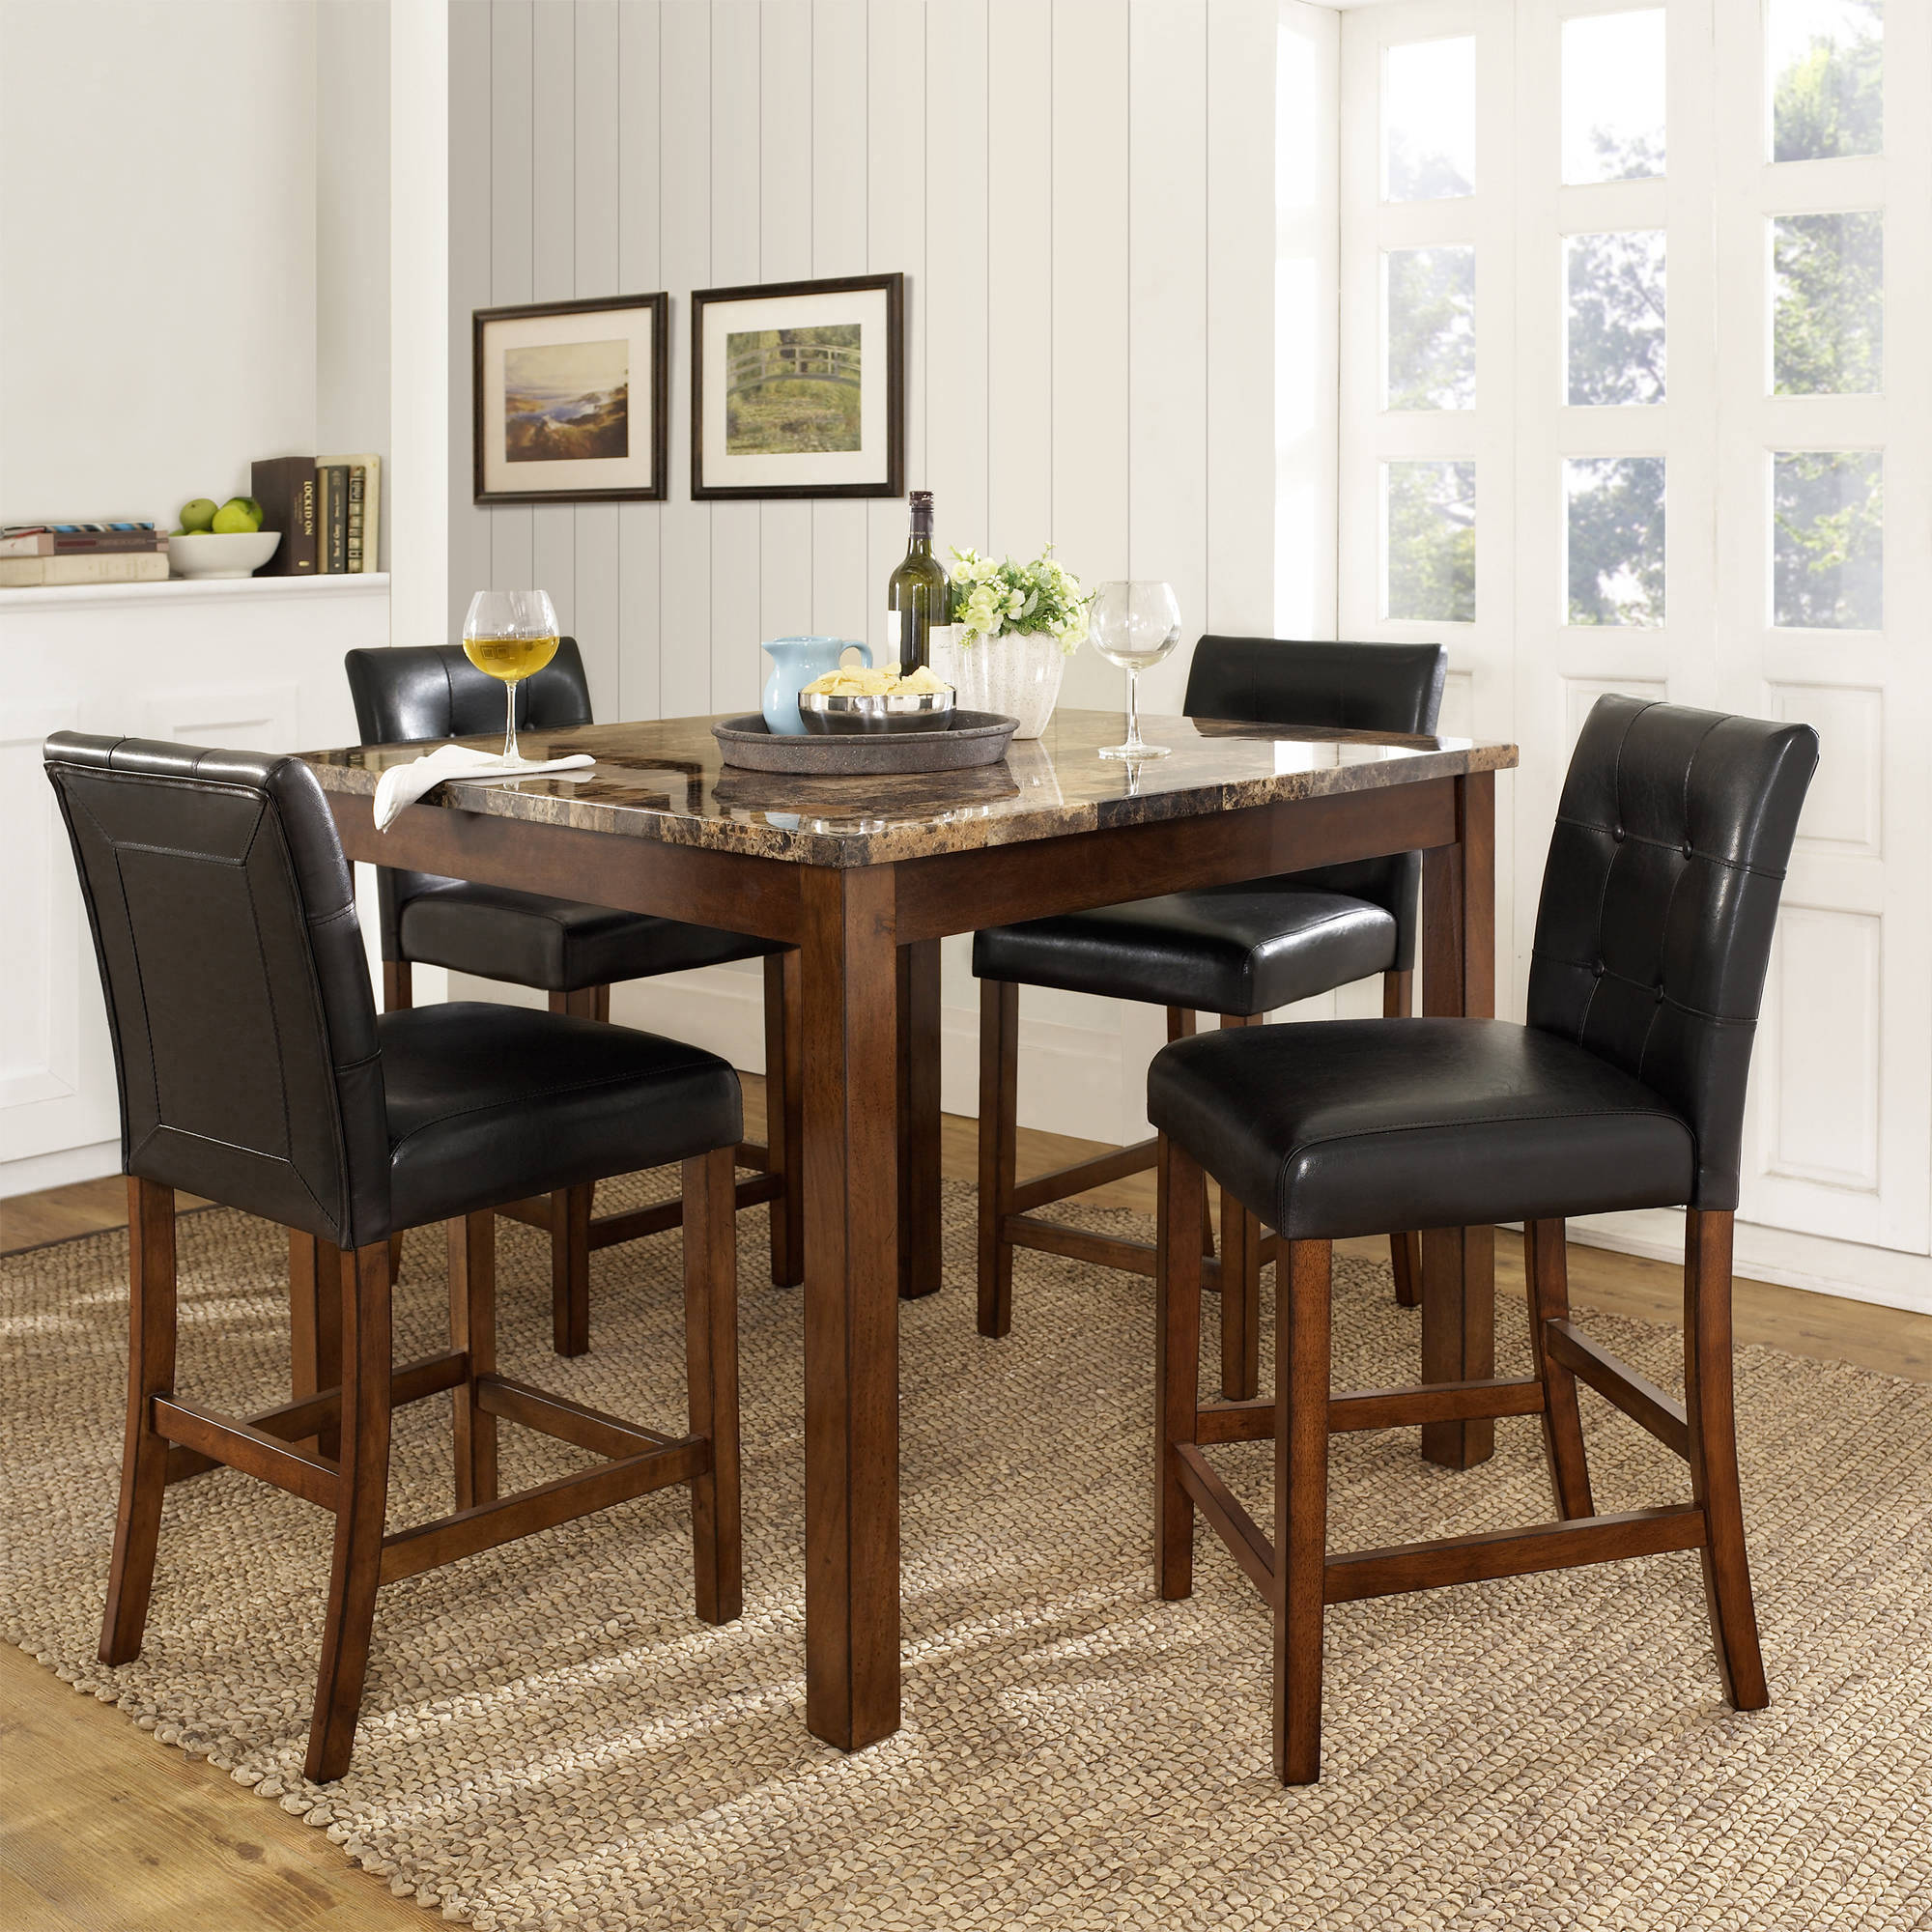 Dining Set 5 Piece Counter High Kitchen Table Wood Furniture Chairs Leather Room 733281688529 Ebay